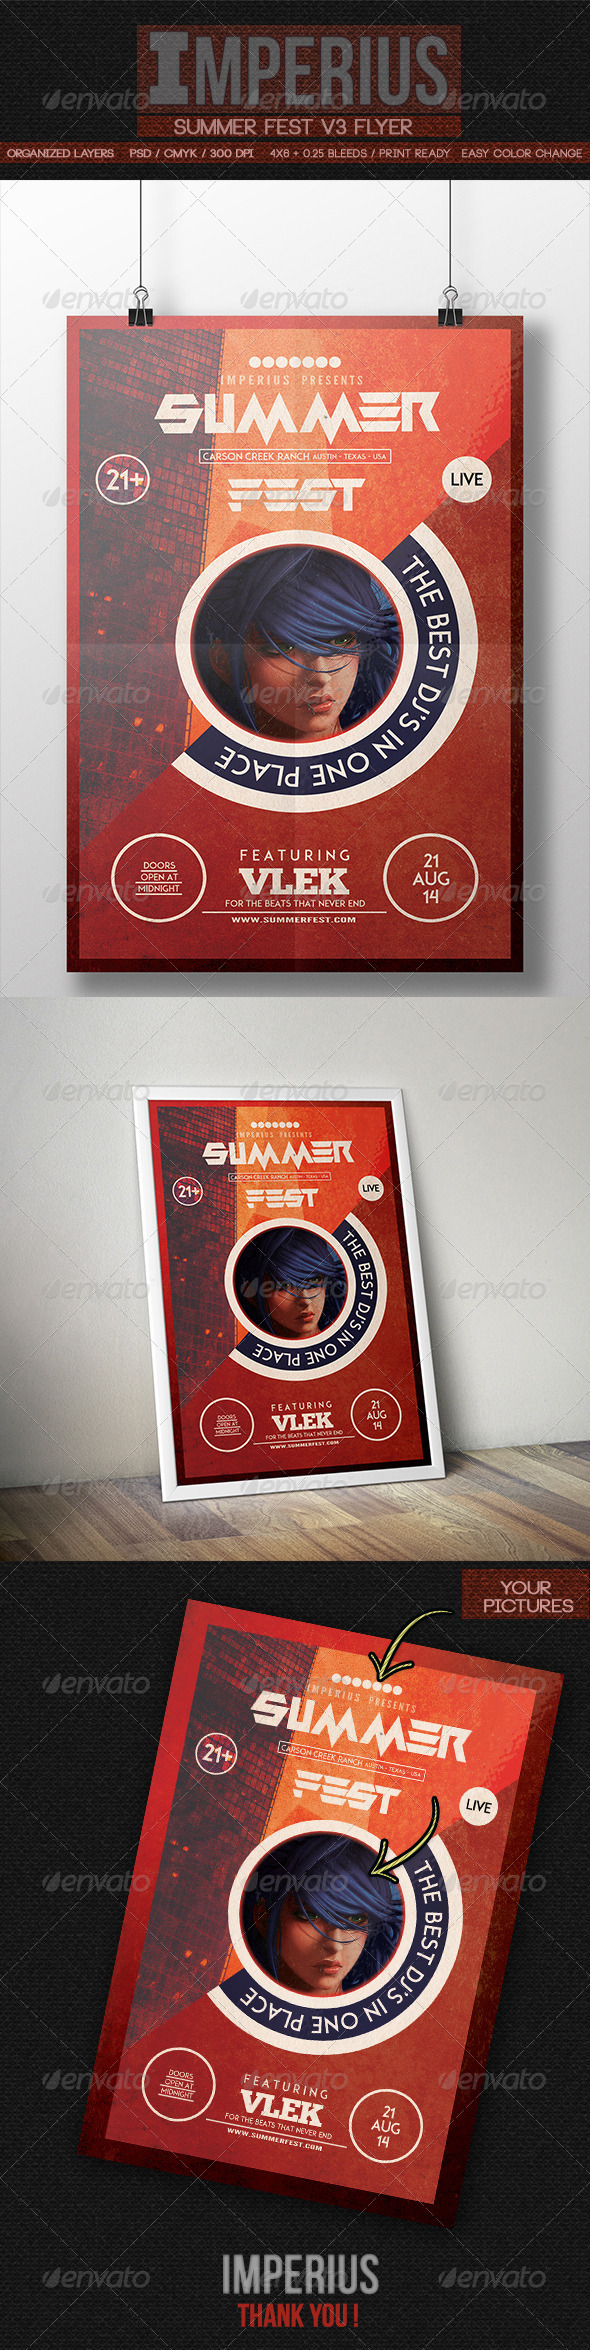 Summer Fest V3 - Flyers Print Templates